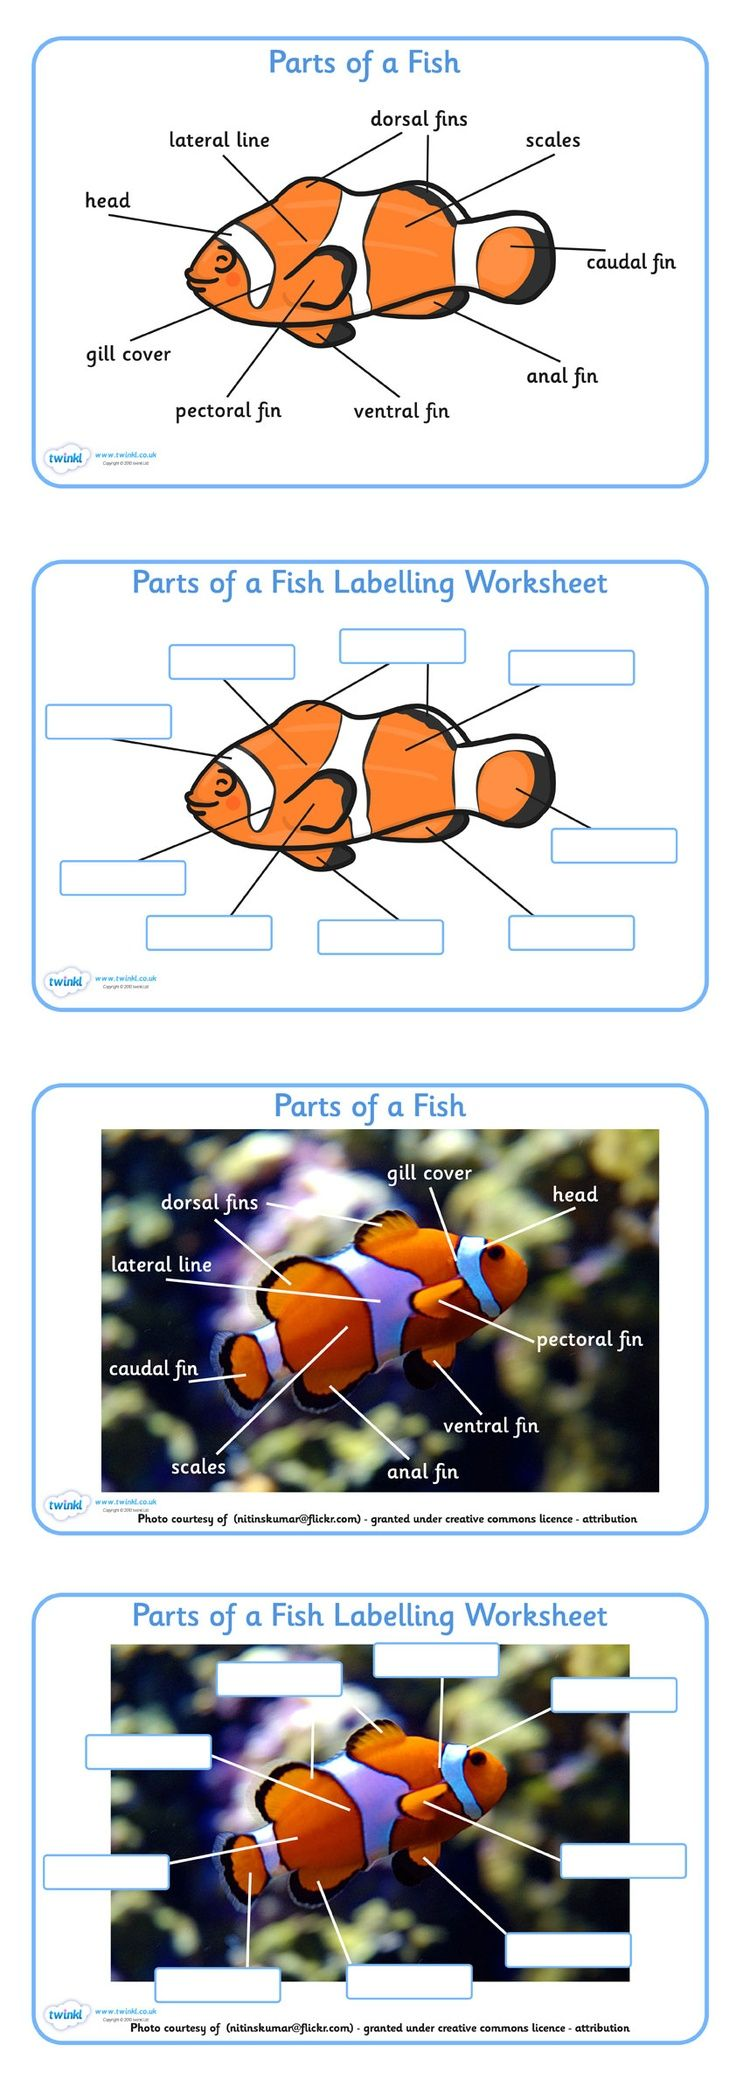 Colouring in sheets twinkl - Parts Of A Fish Labelling Sheets Pop Over To Our Site At Twinkl 17 Best Images About Unit Ideas Fish On Pinterest Physical